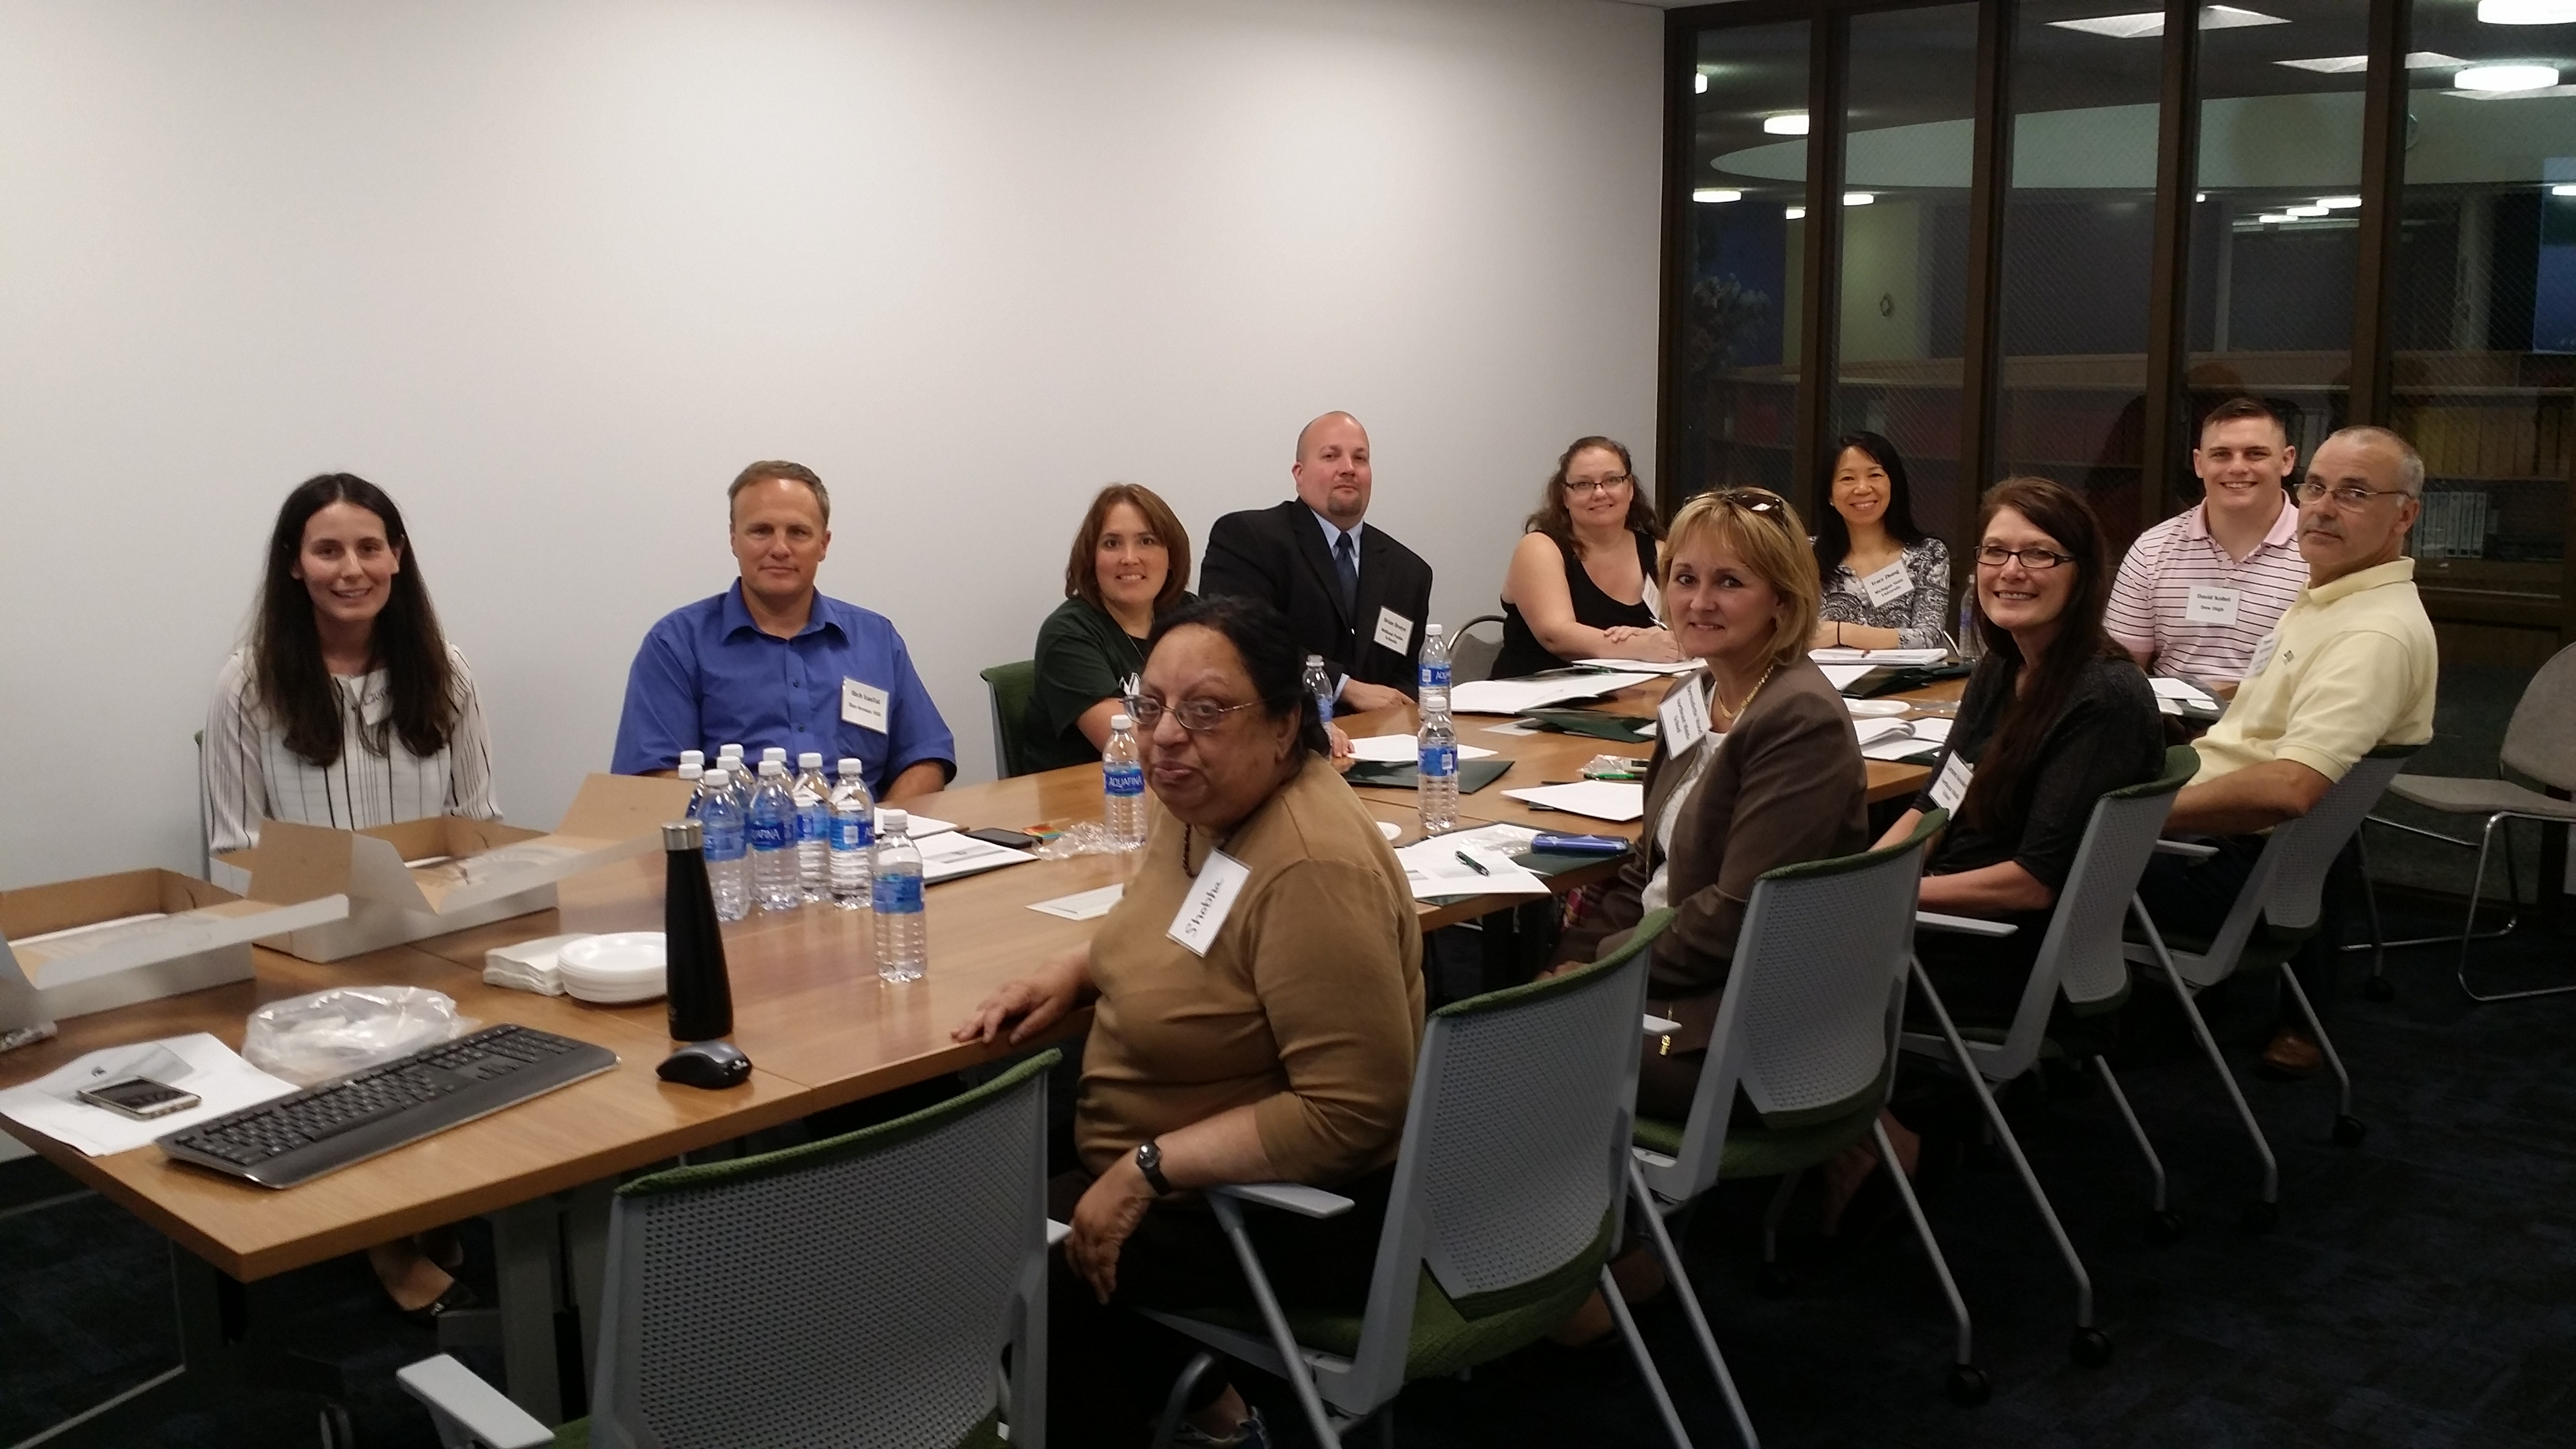 Teachers participating in a workshop around a conference table